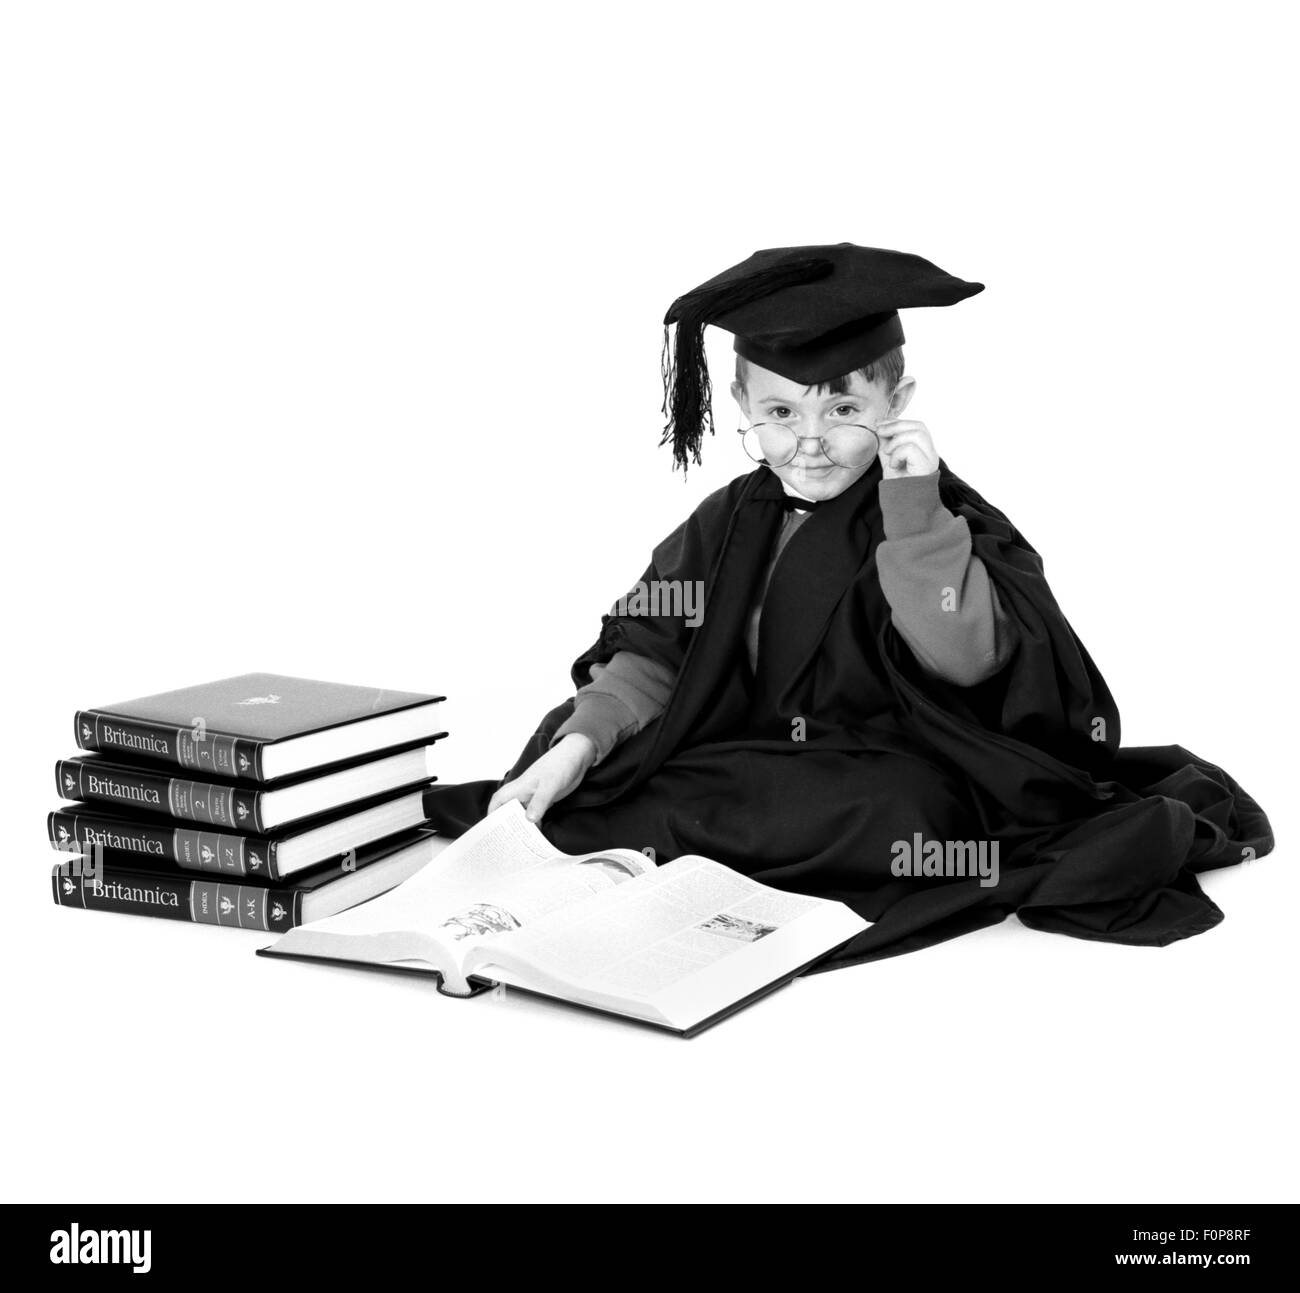 Young boy dressed in mortar board and gown reading Encyclopaedia Britannica - Stock Image